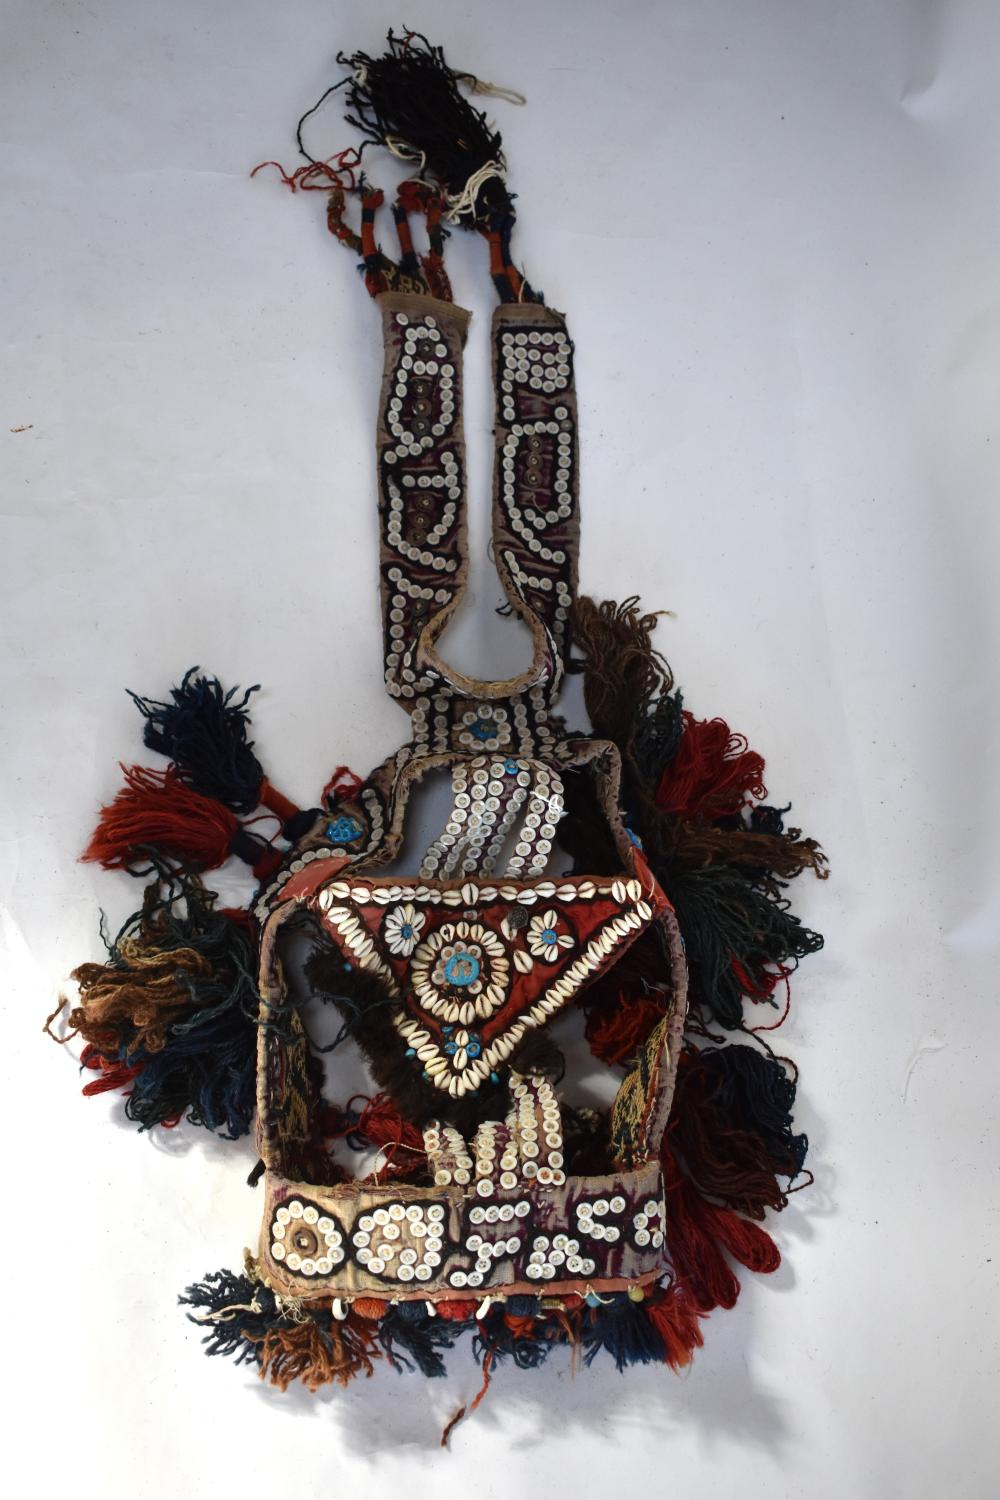 Ceremonial camel head-dress